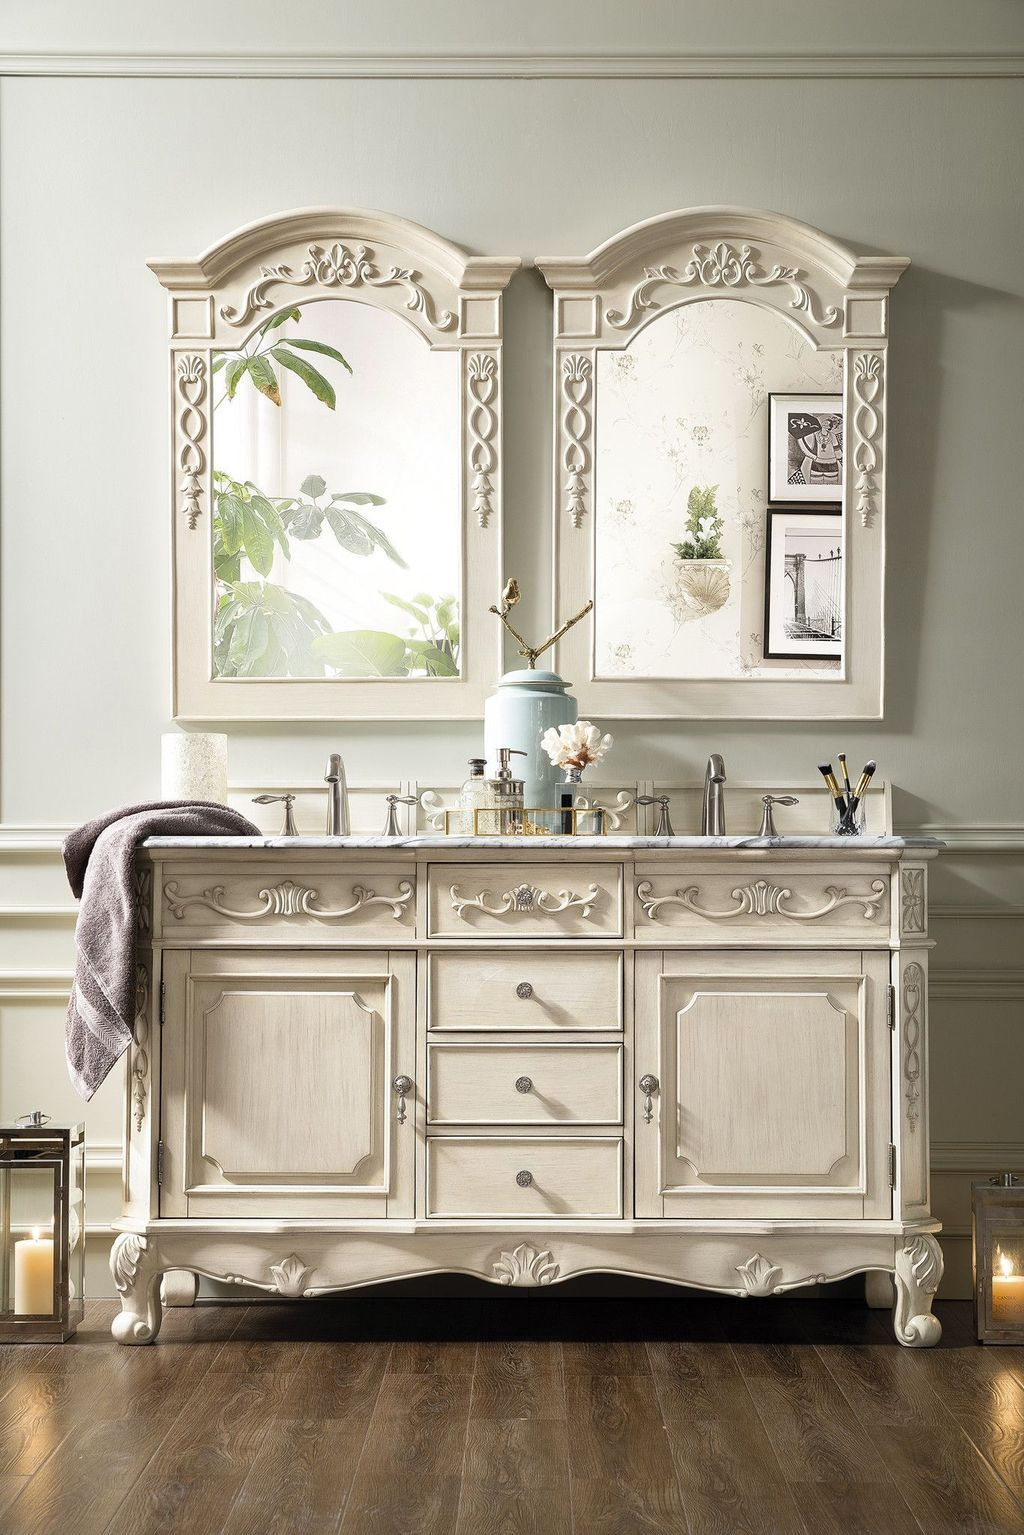 40 Double Vanity Bathroom Small Whenever Someone Walks Into The